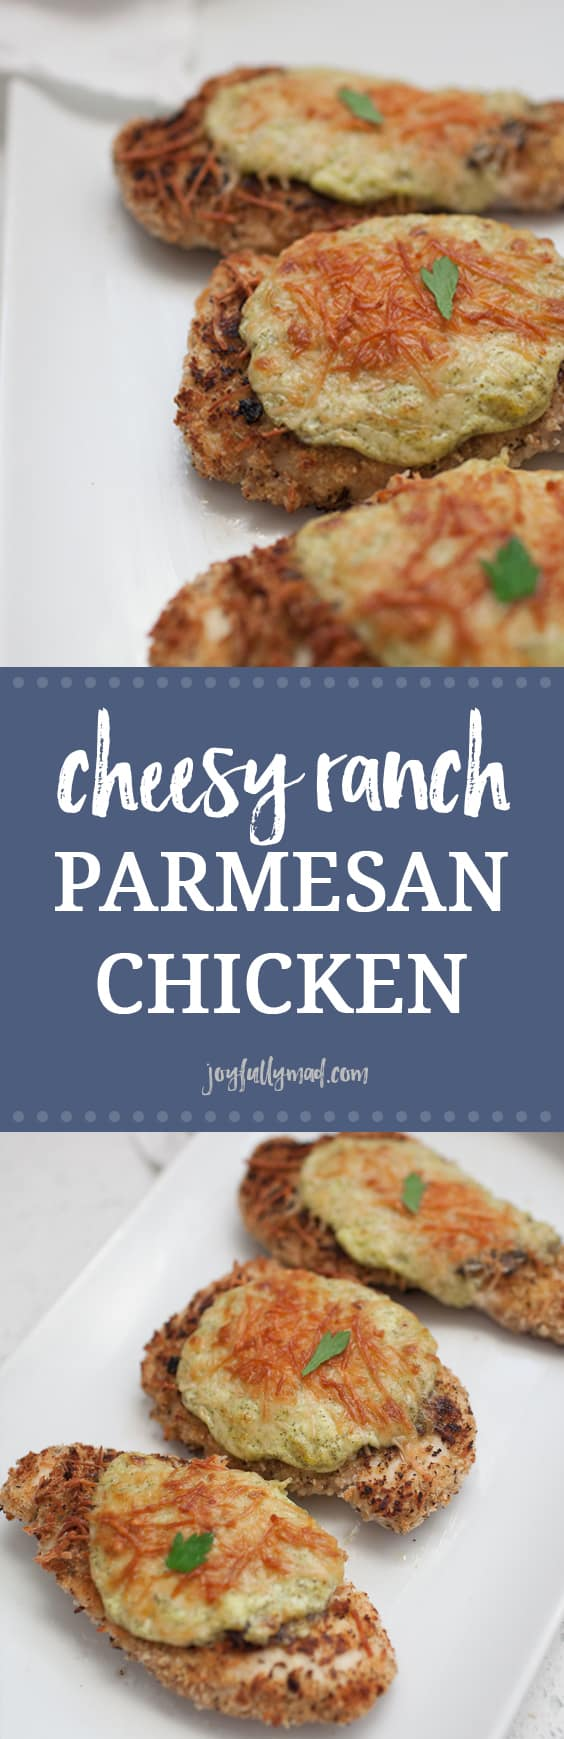 If you're looking for an easy weeknight dinner that feels a bit fancy, this Cheesy Ranch Parmesan Chicken is your solution! It's quick and packed with so much flavor. Your entire family will love this recipe!